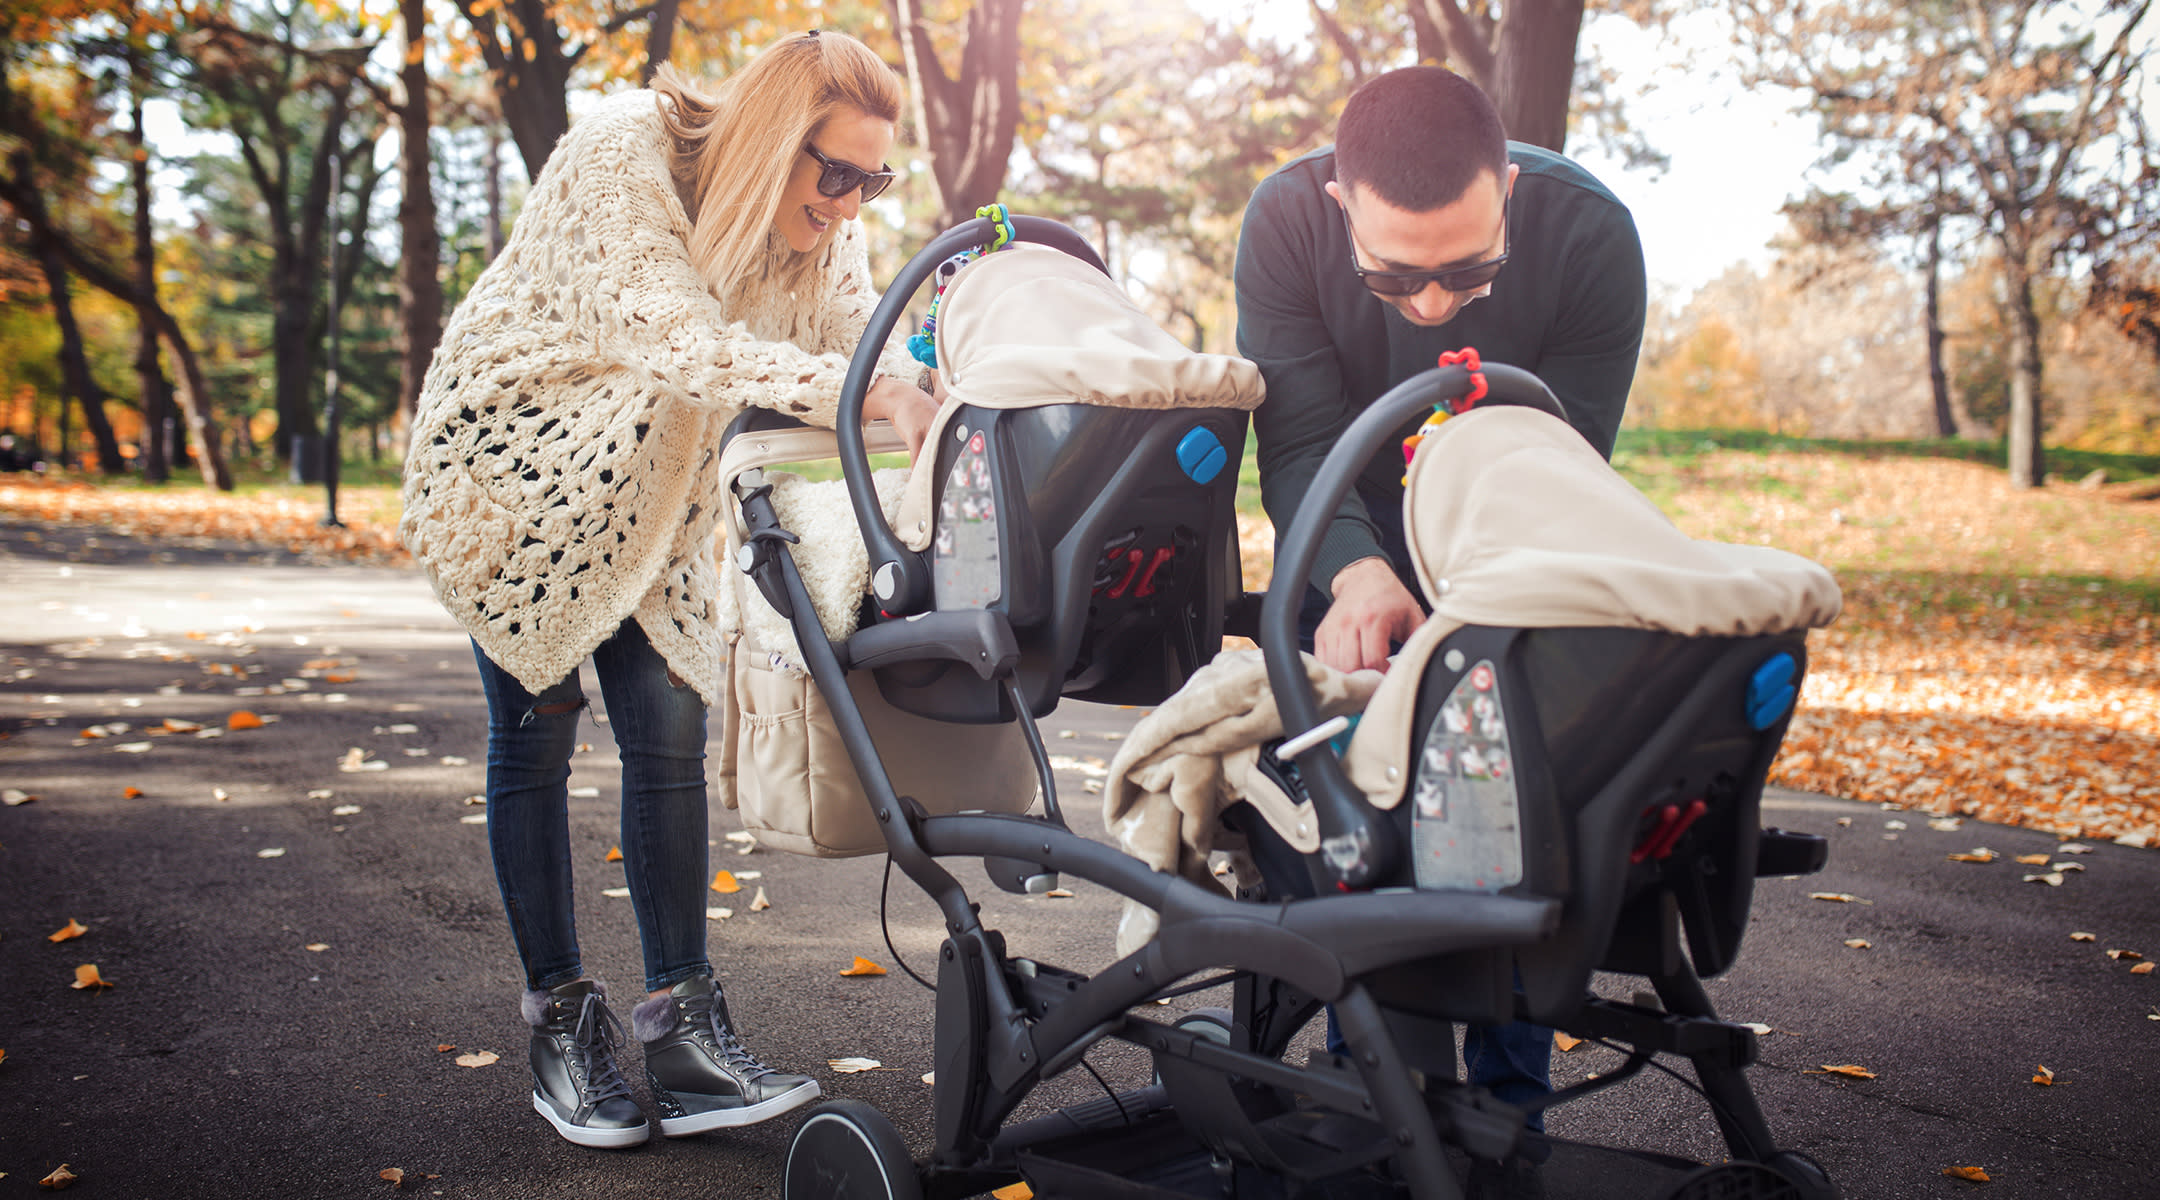 couple with double stroller in park